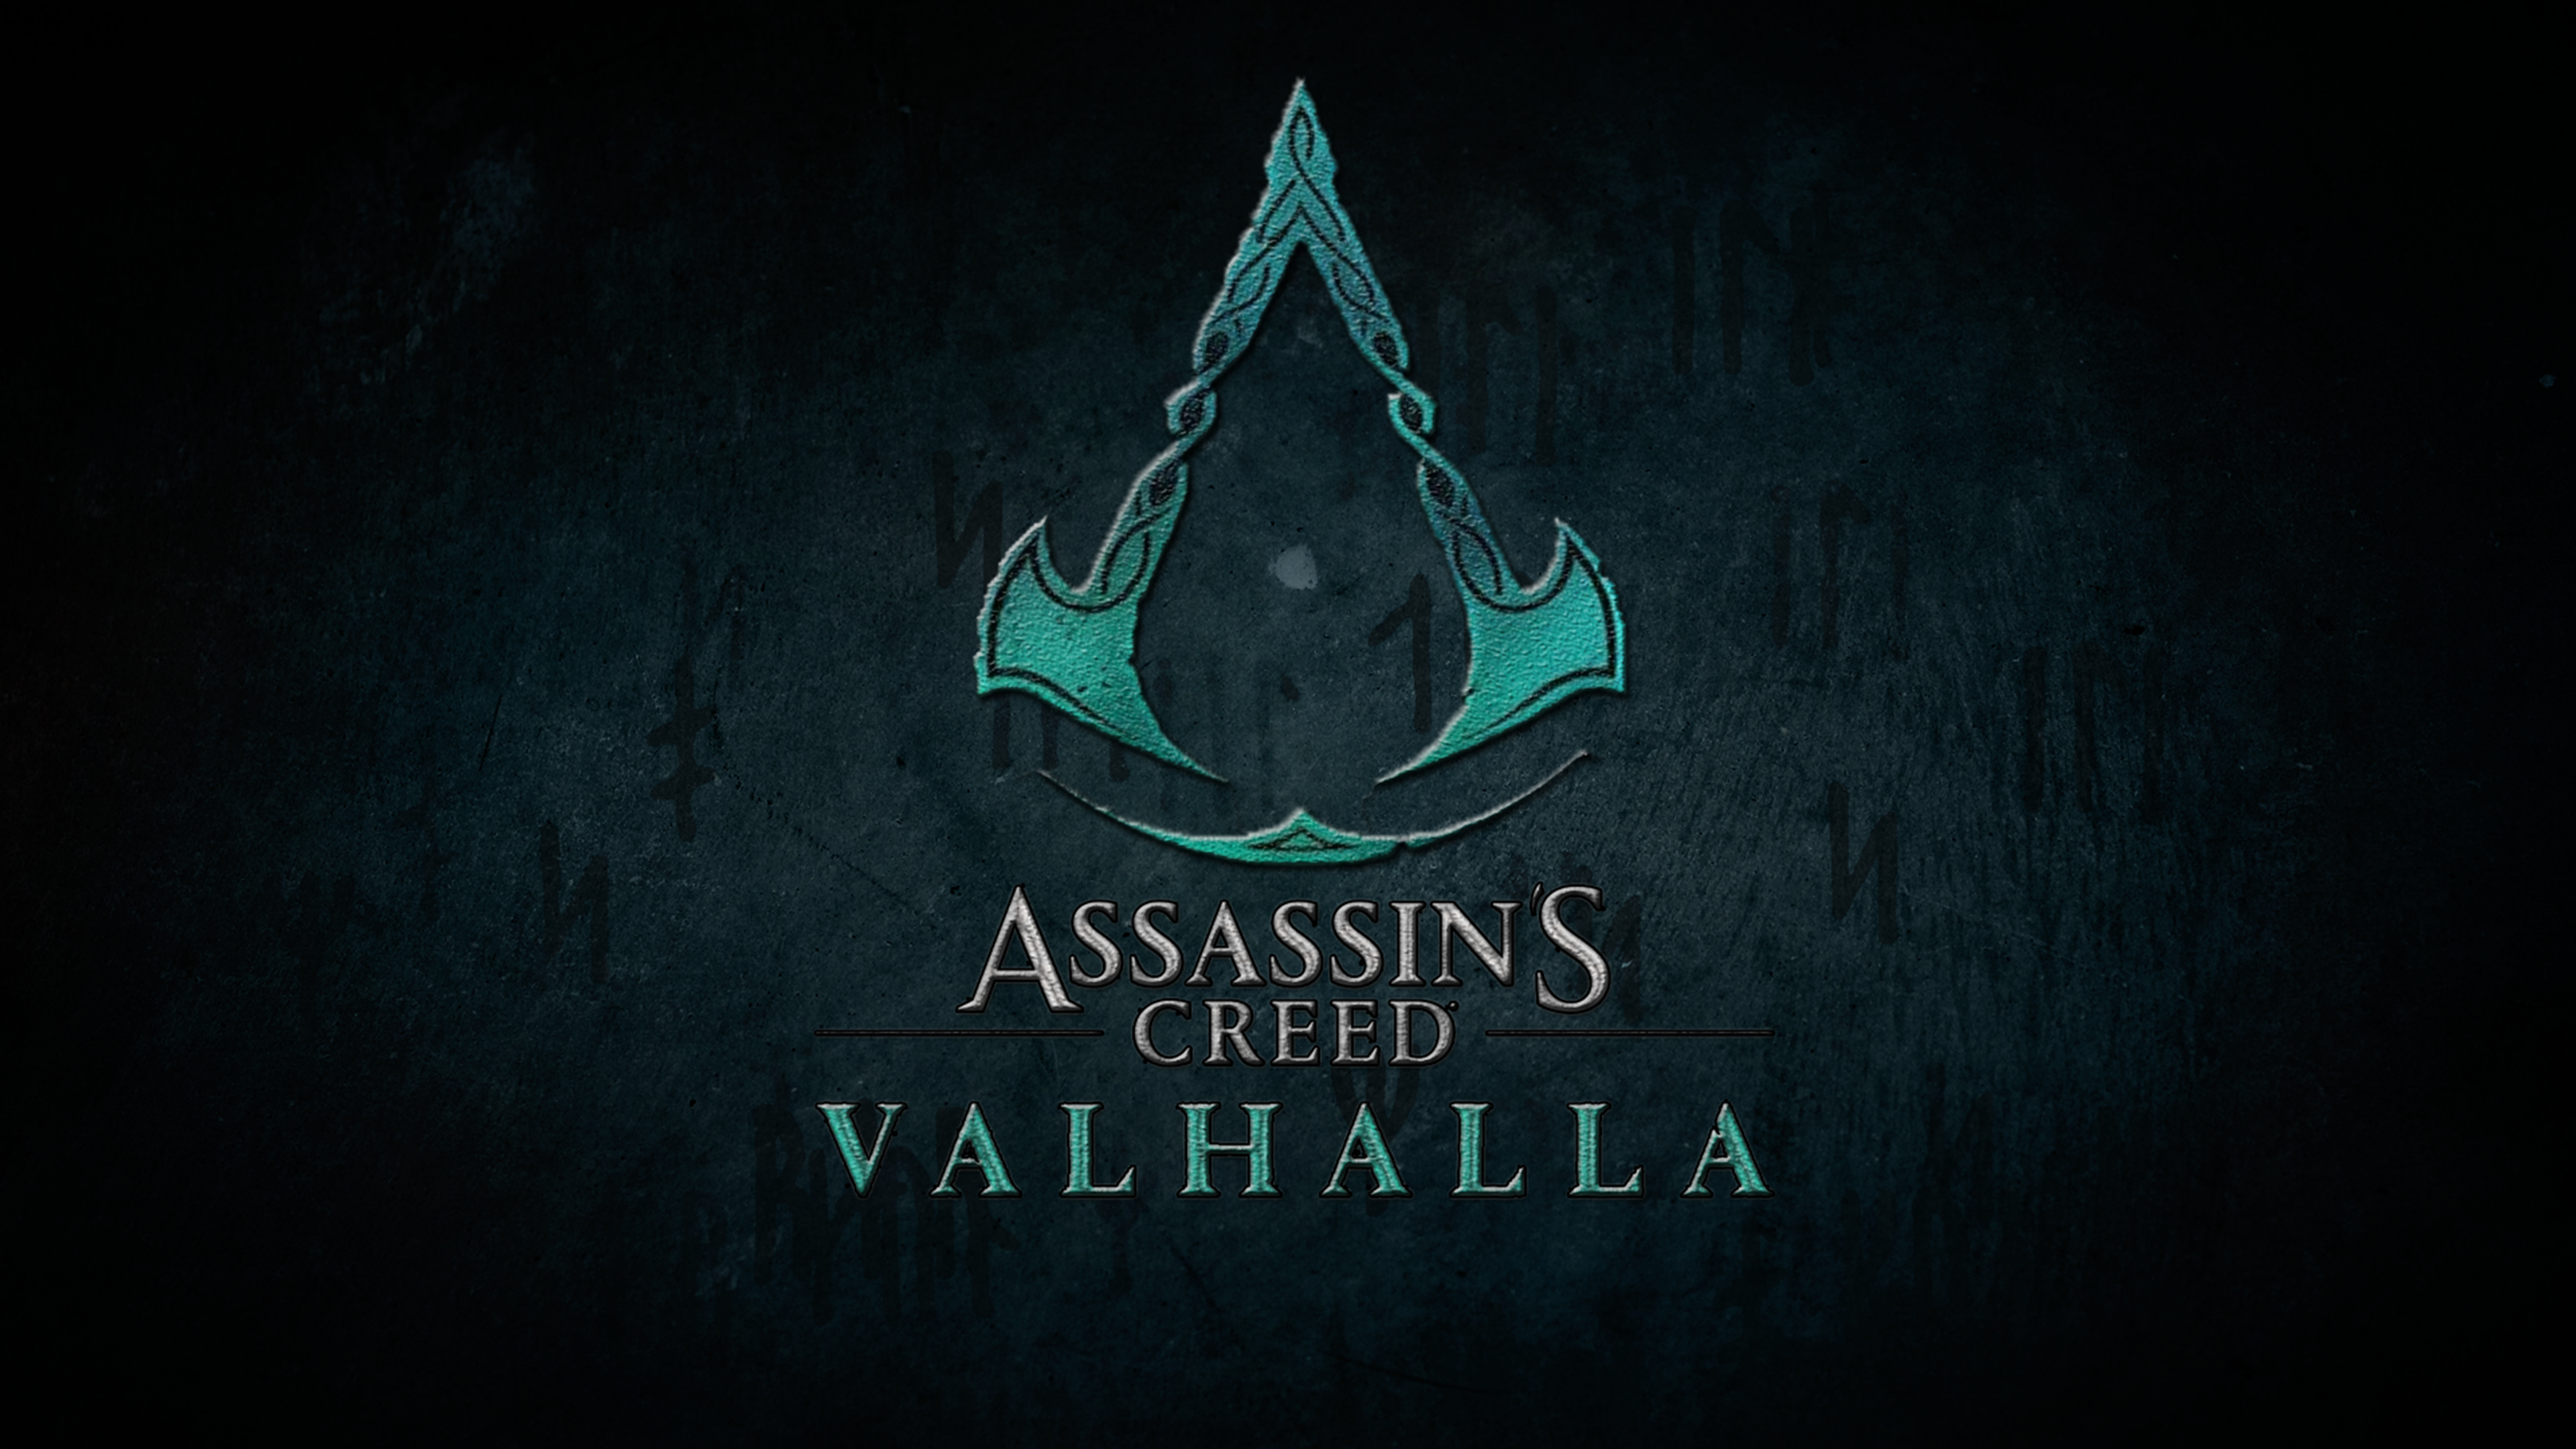 Assassin S Creed Valhalla Wallpaper 3840 X 2160 In 2020 Assassin S Creed Assassins Creed Artwork Assassins Creed